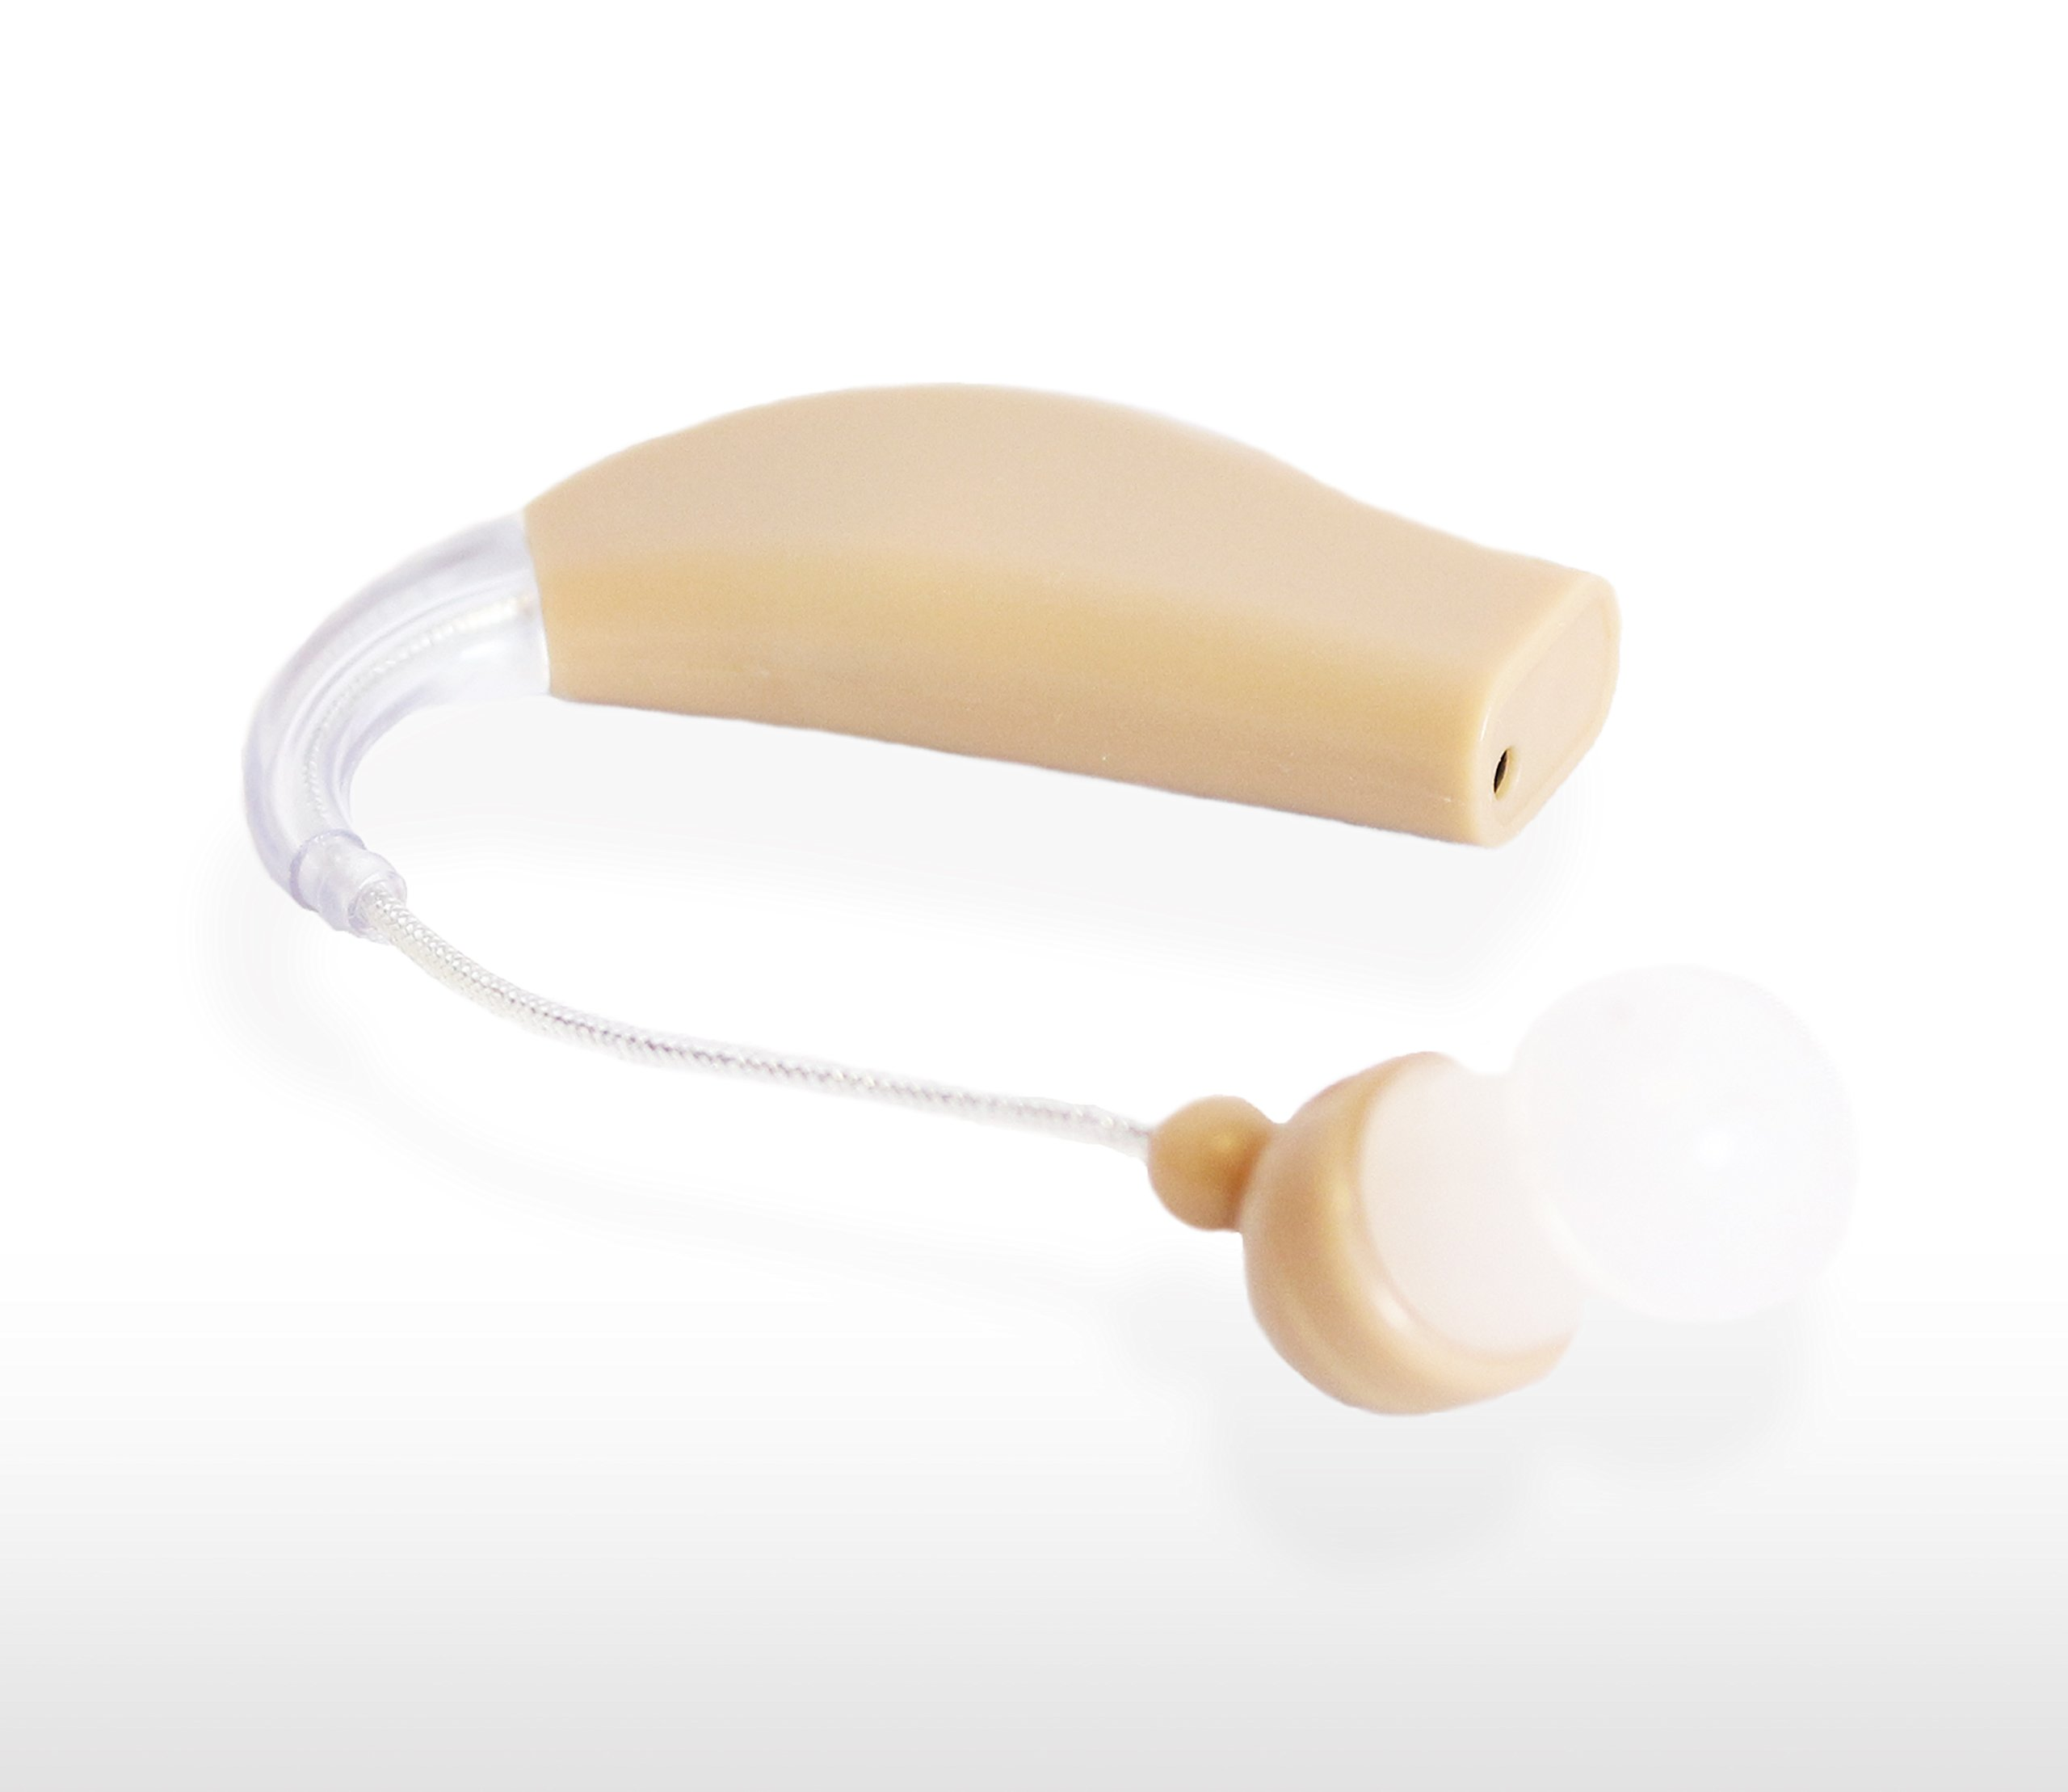 Sound Amplification Product - Personal Hearing Amplifier - Helps Aid your Hearing - Behind the Ear Design - Customizable Volume Control & ClearFIT Tips - Amplify Sounds while Hunting by ClearHear